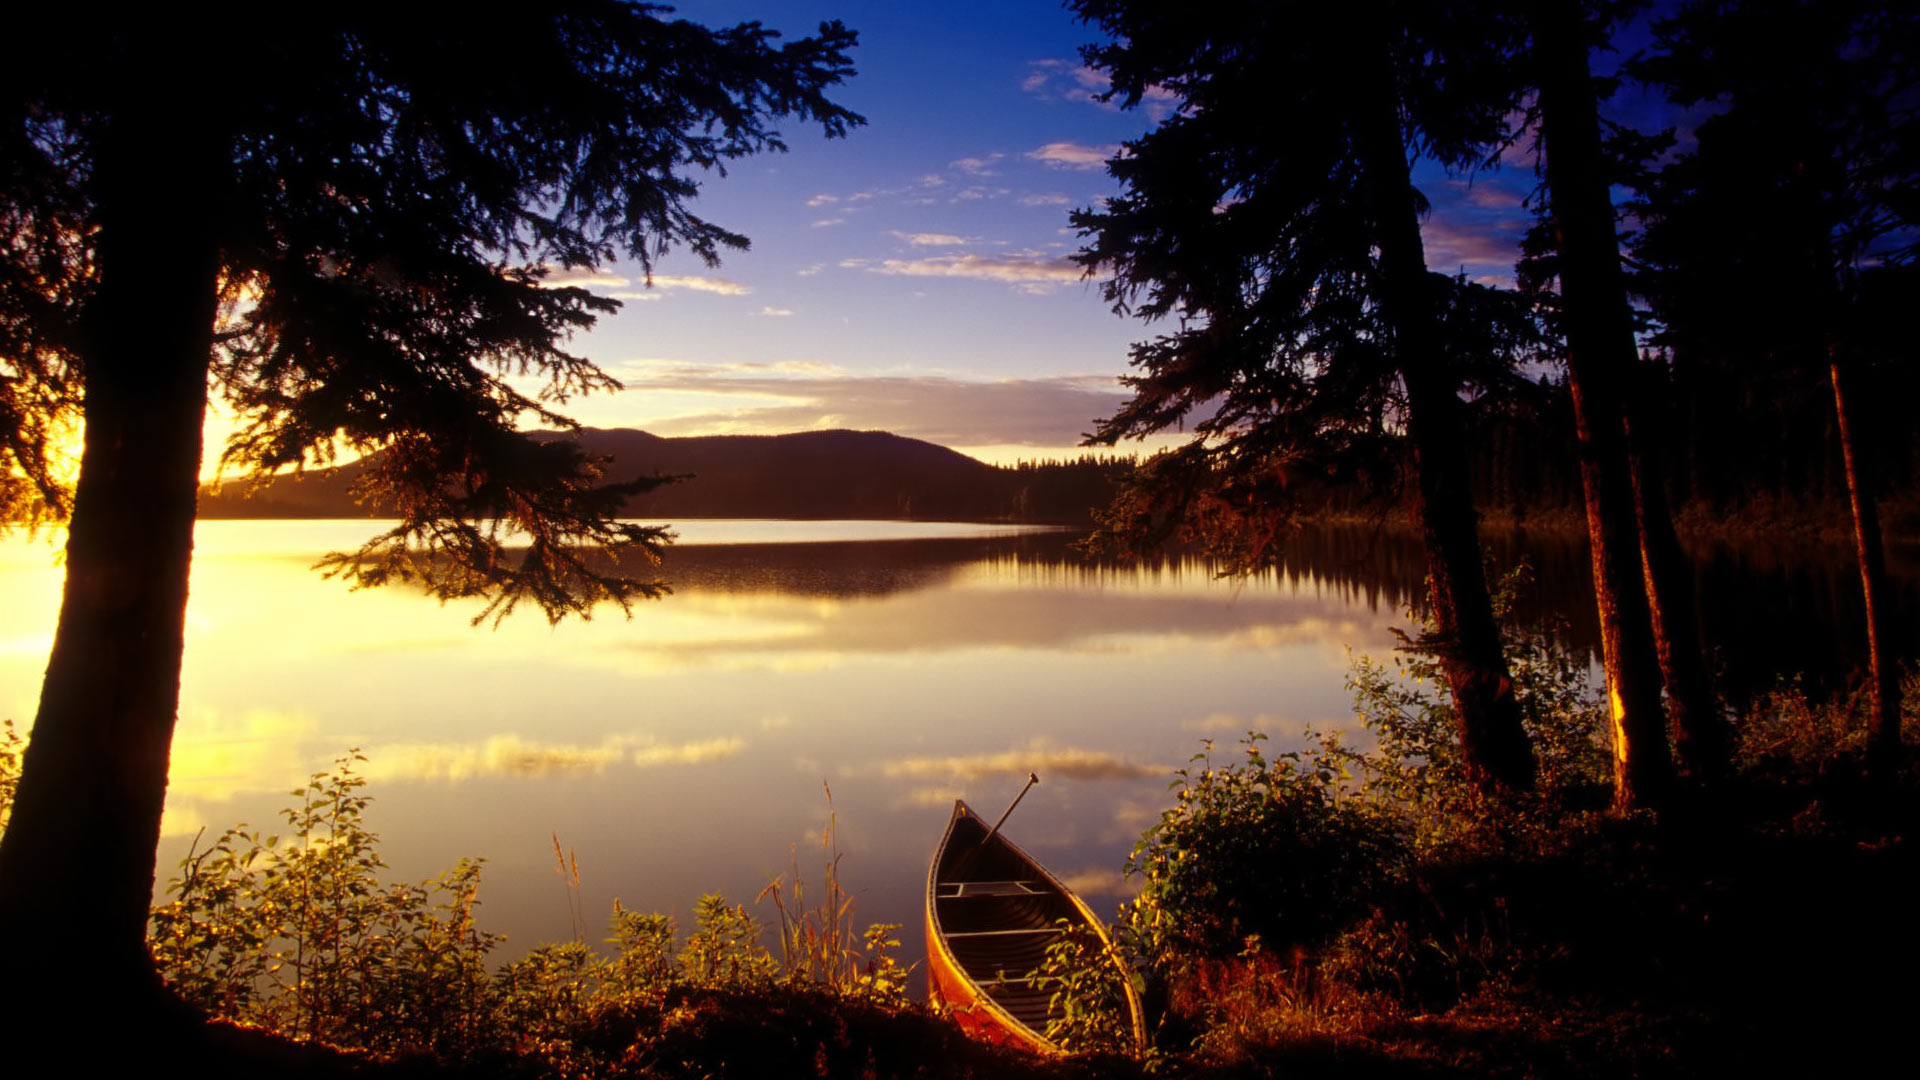 Lake hd wallpaper background image 1920x1080 id for Lakeview cabin download